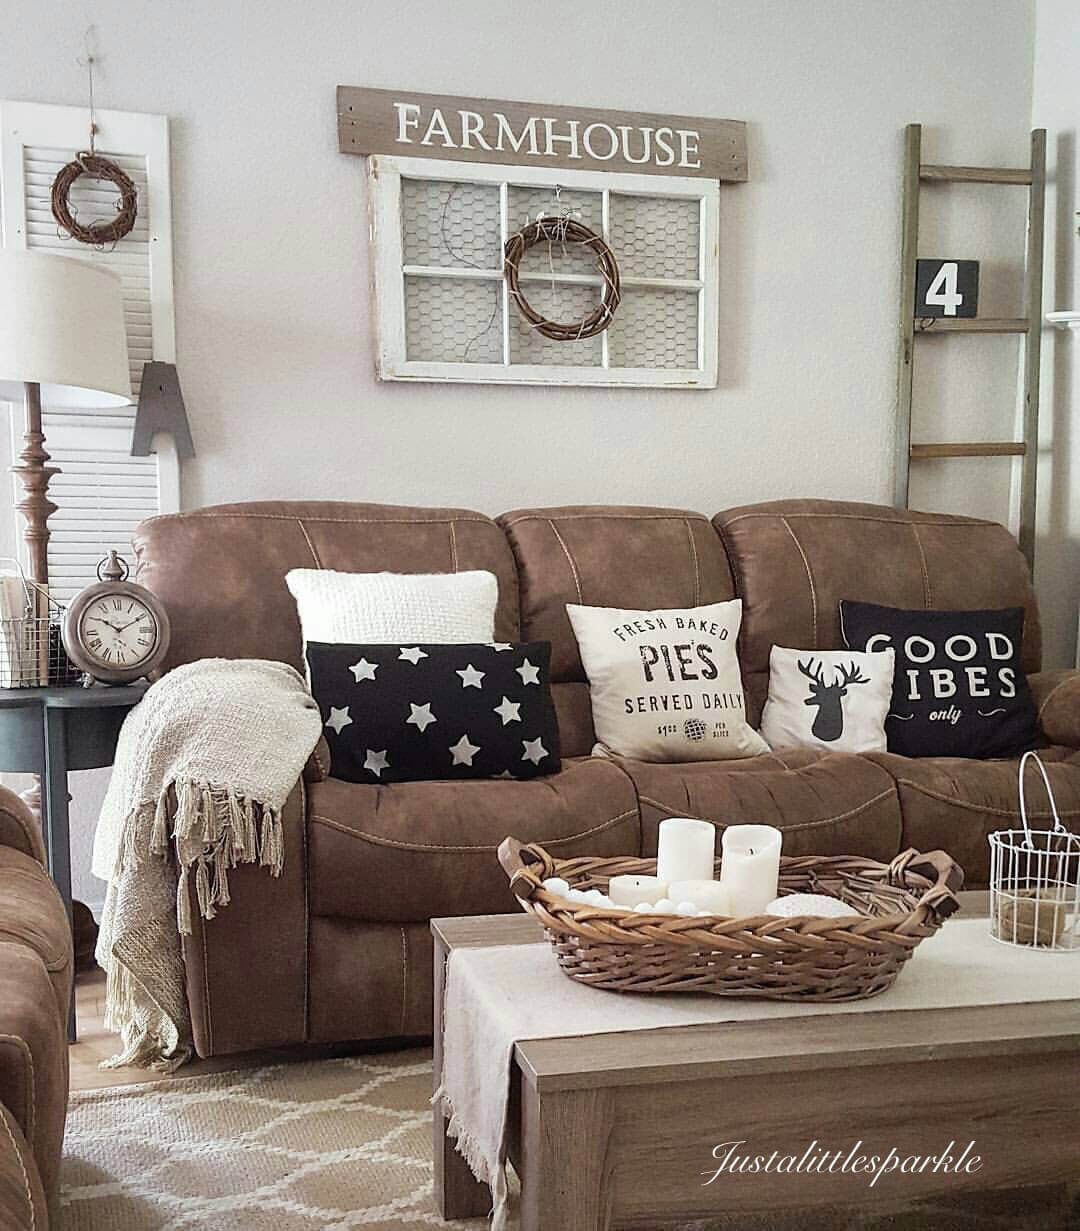 Attrayant Microfiber Couch Farmhouse Living Room Decor Ideas